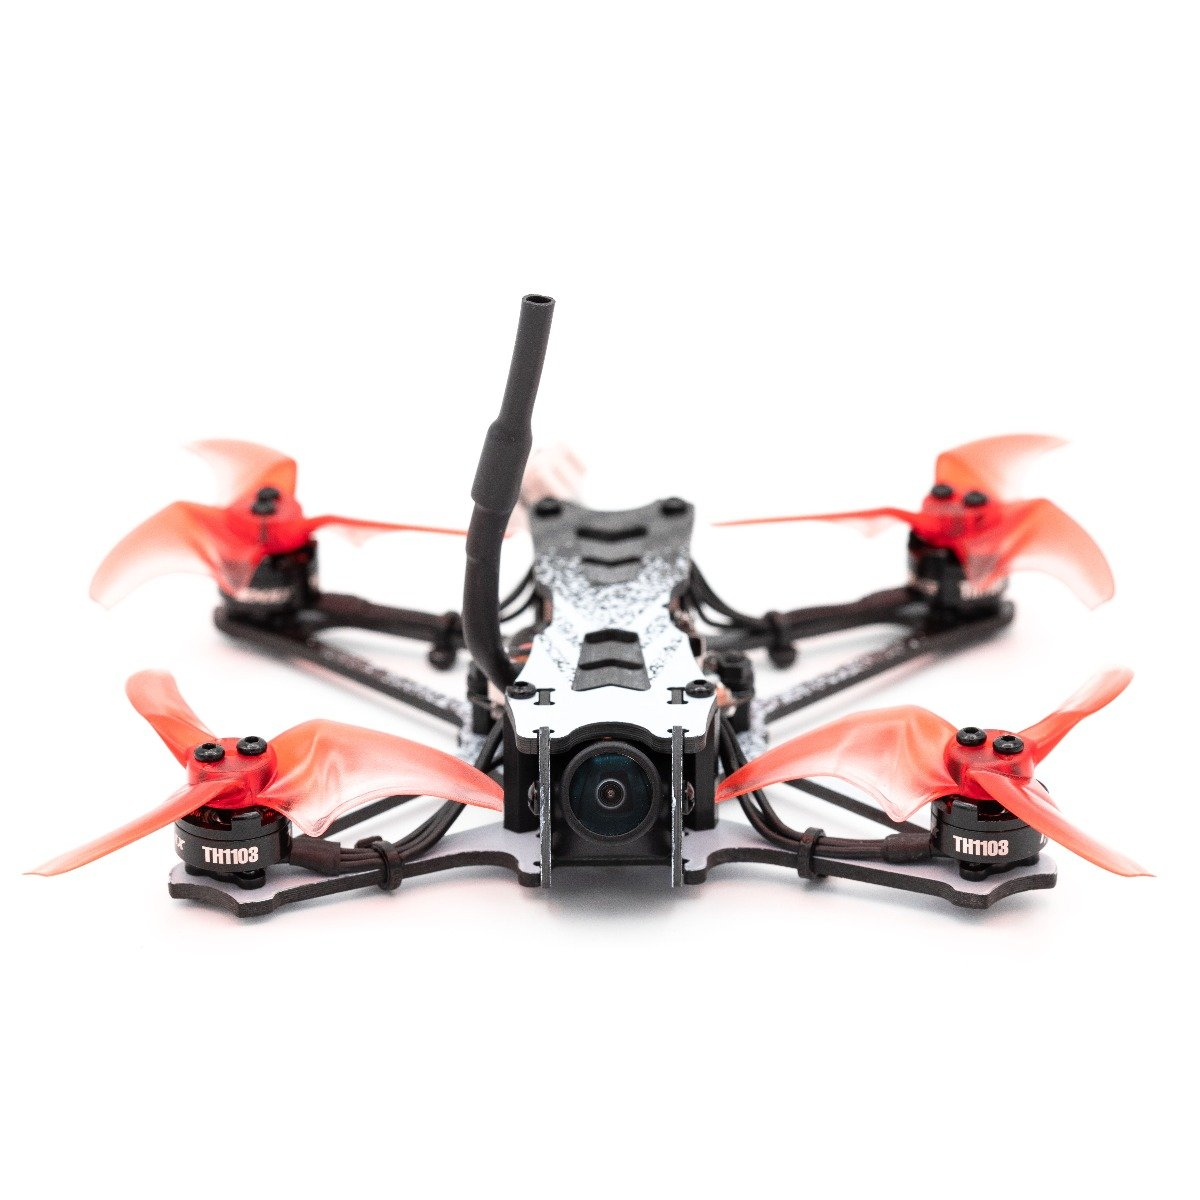 Tinyhawk II Freestyle Emax Model